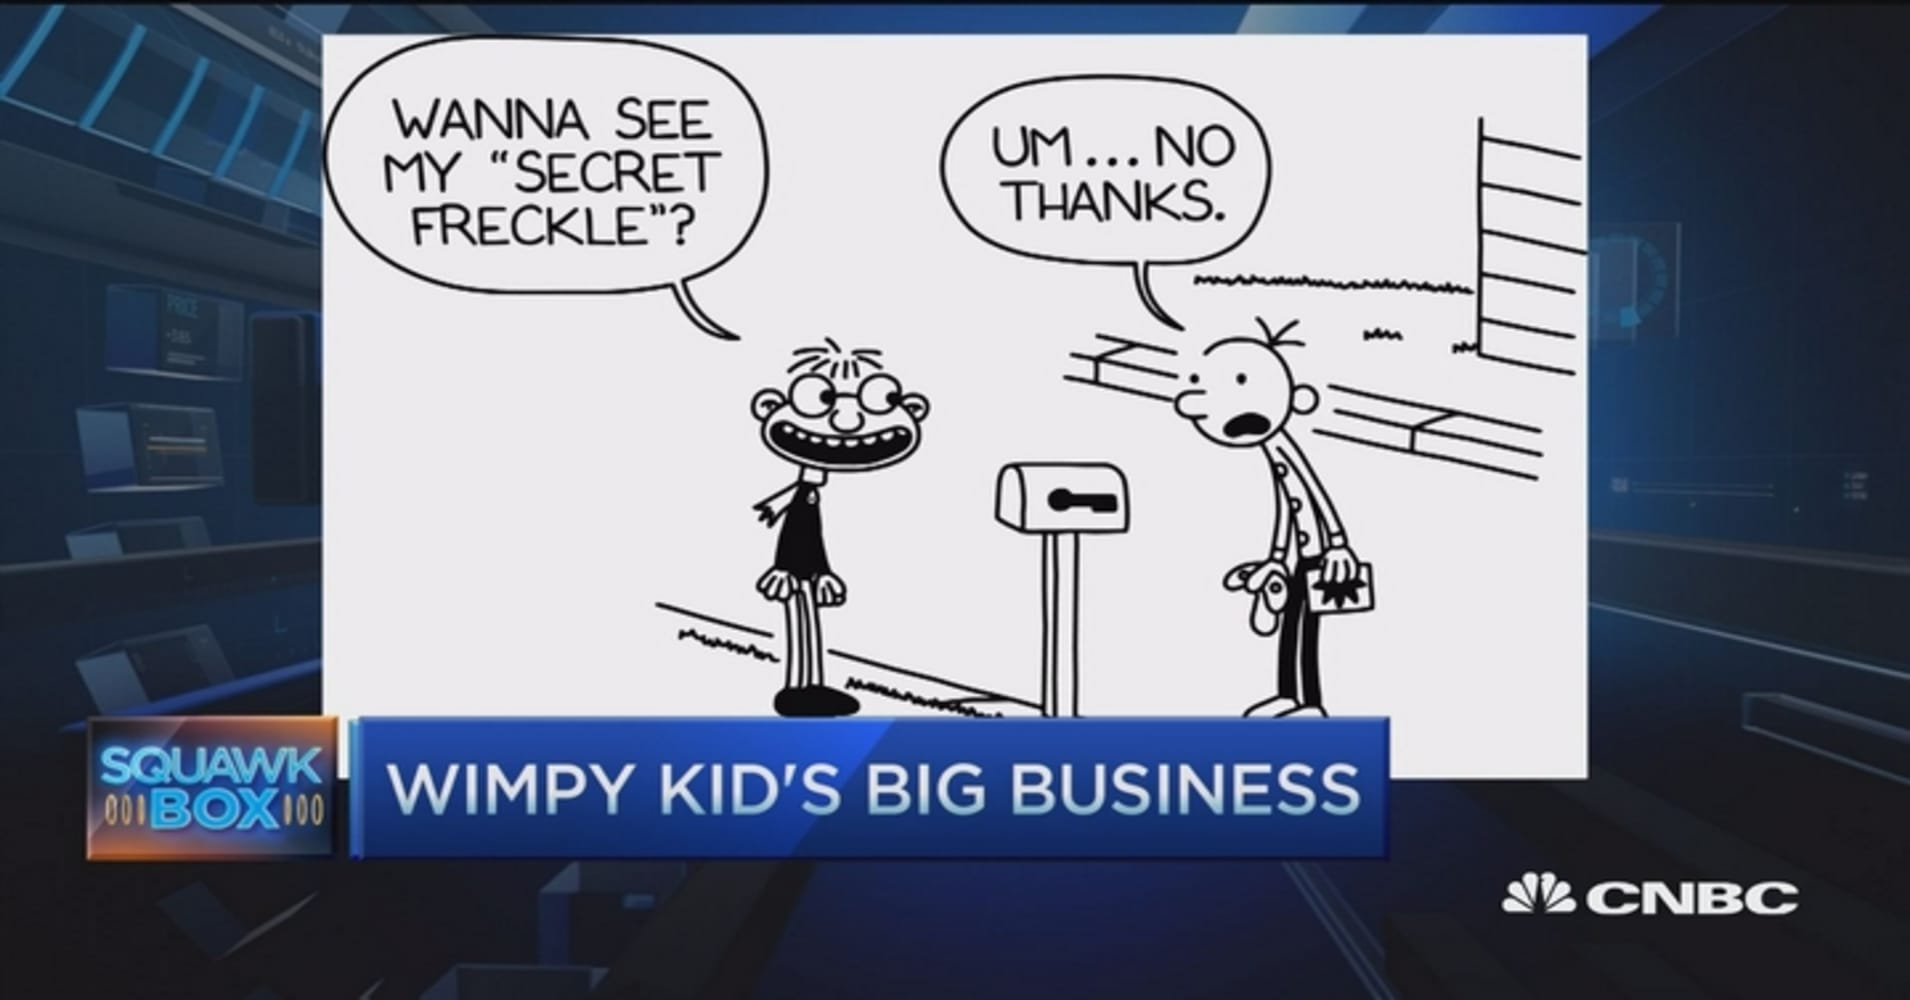 The big business of wimpy kid solutioingenieria Gallery